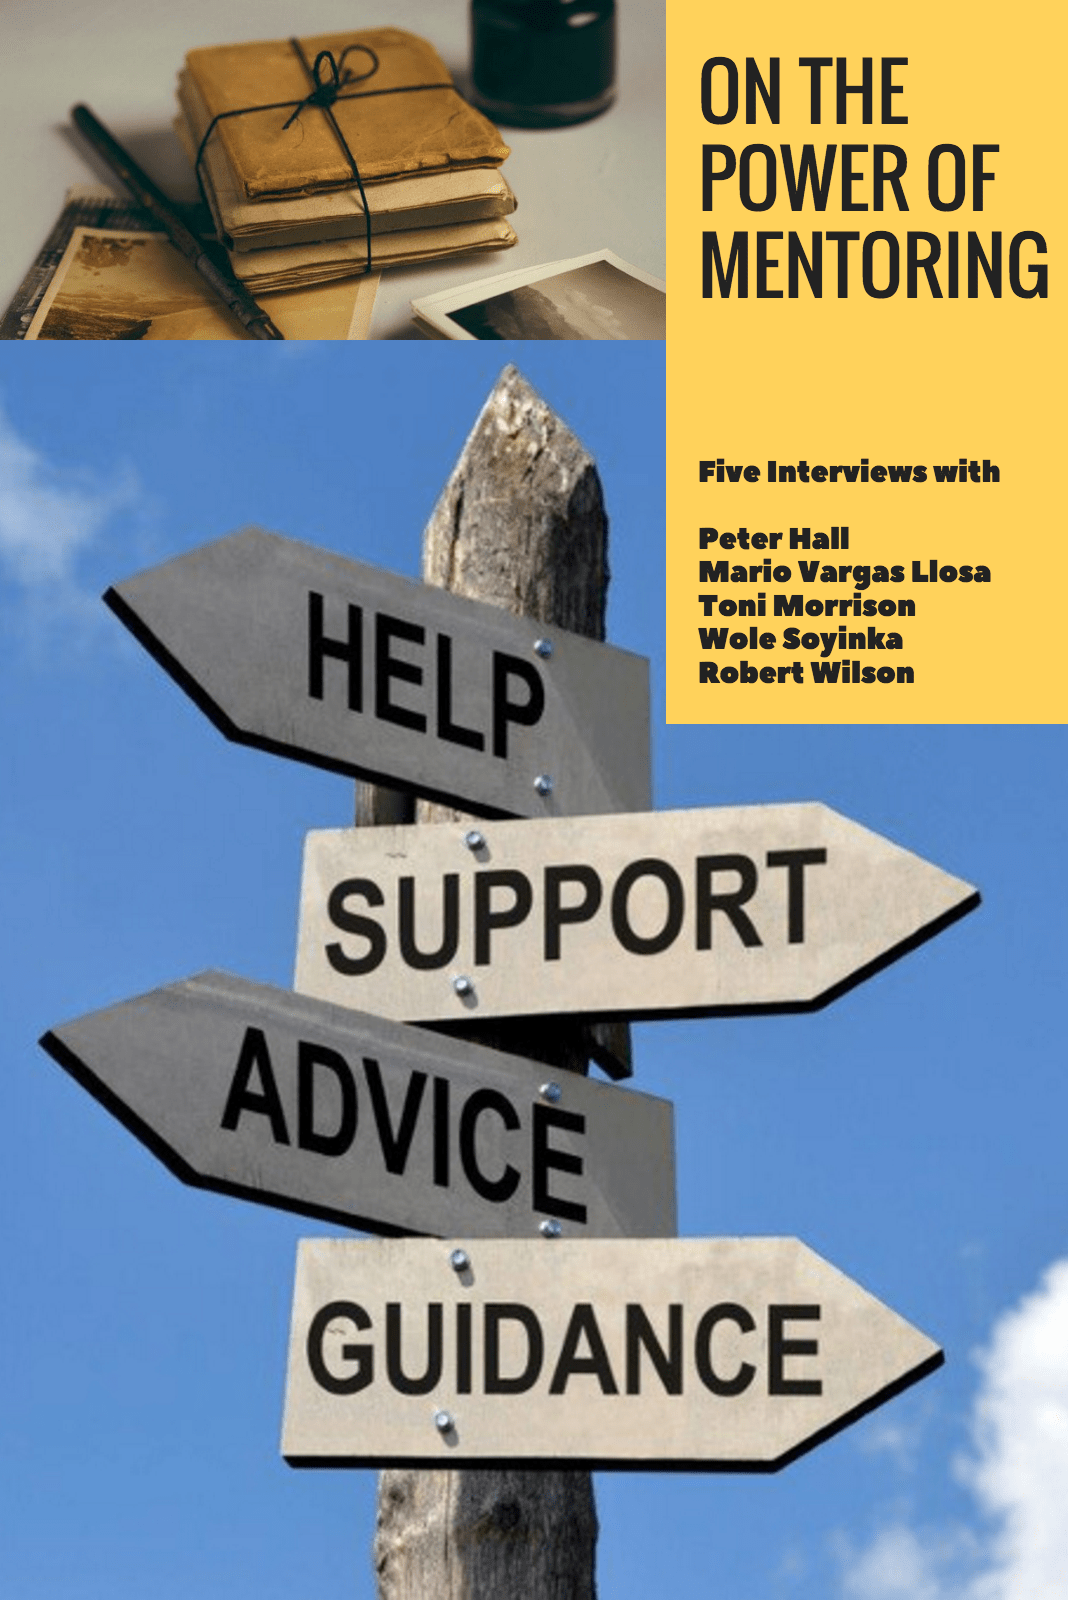 On the Power of Mentoring